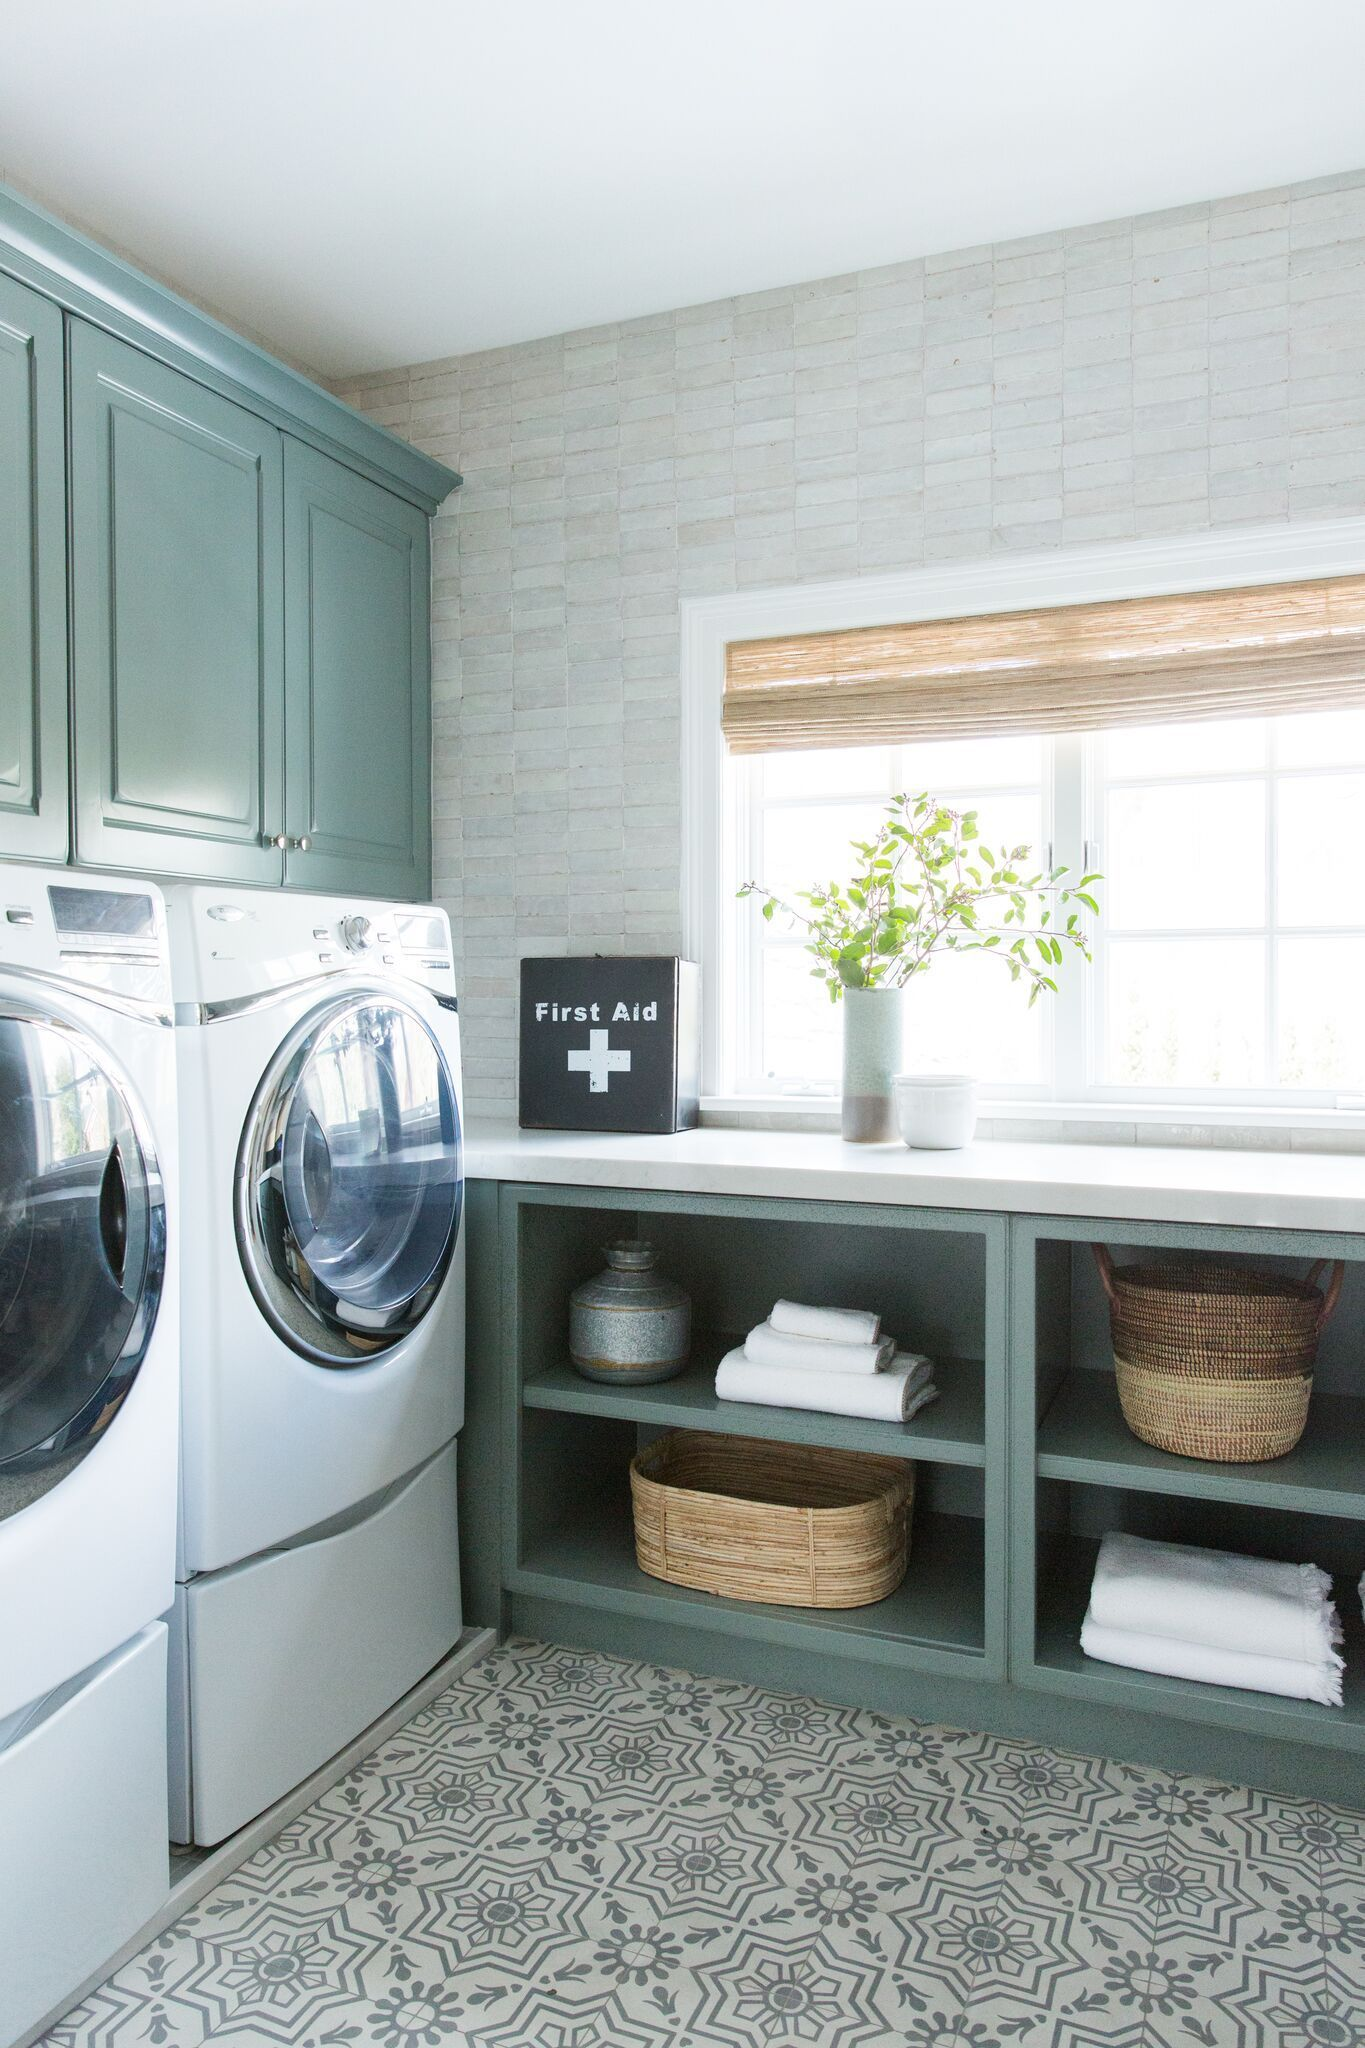 A New Classic Laundry Room Remodel With Clay Tiles, Green